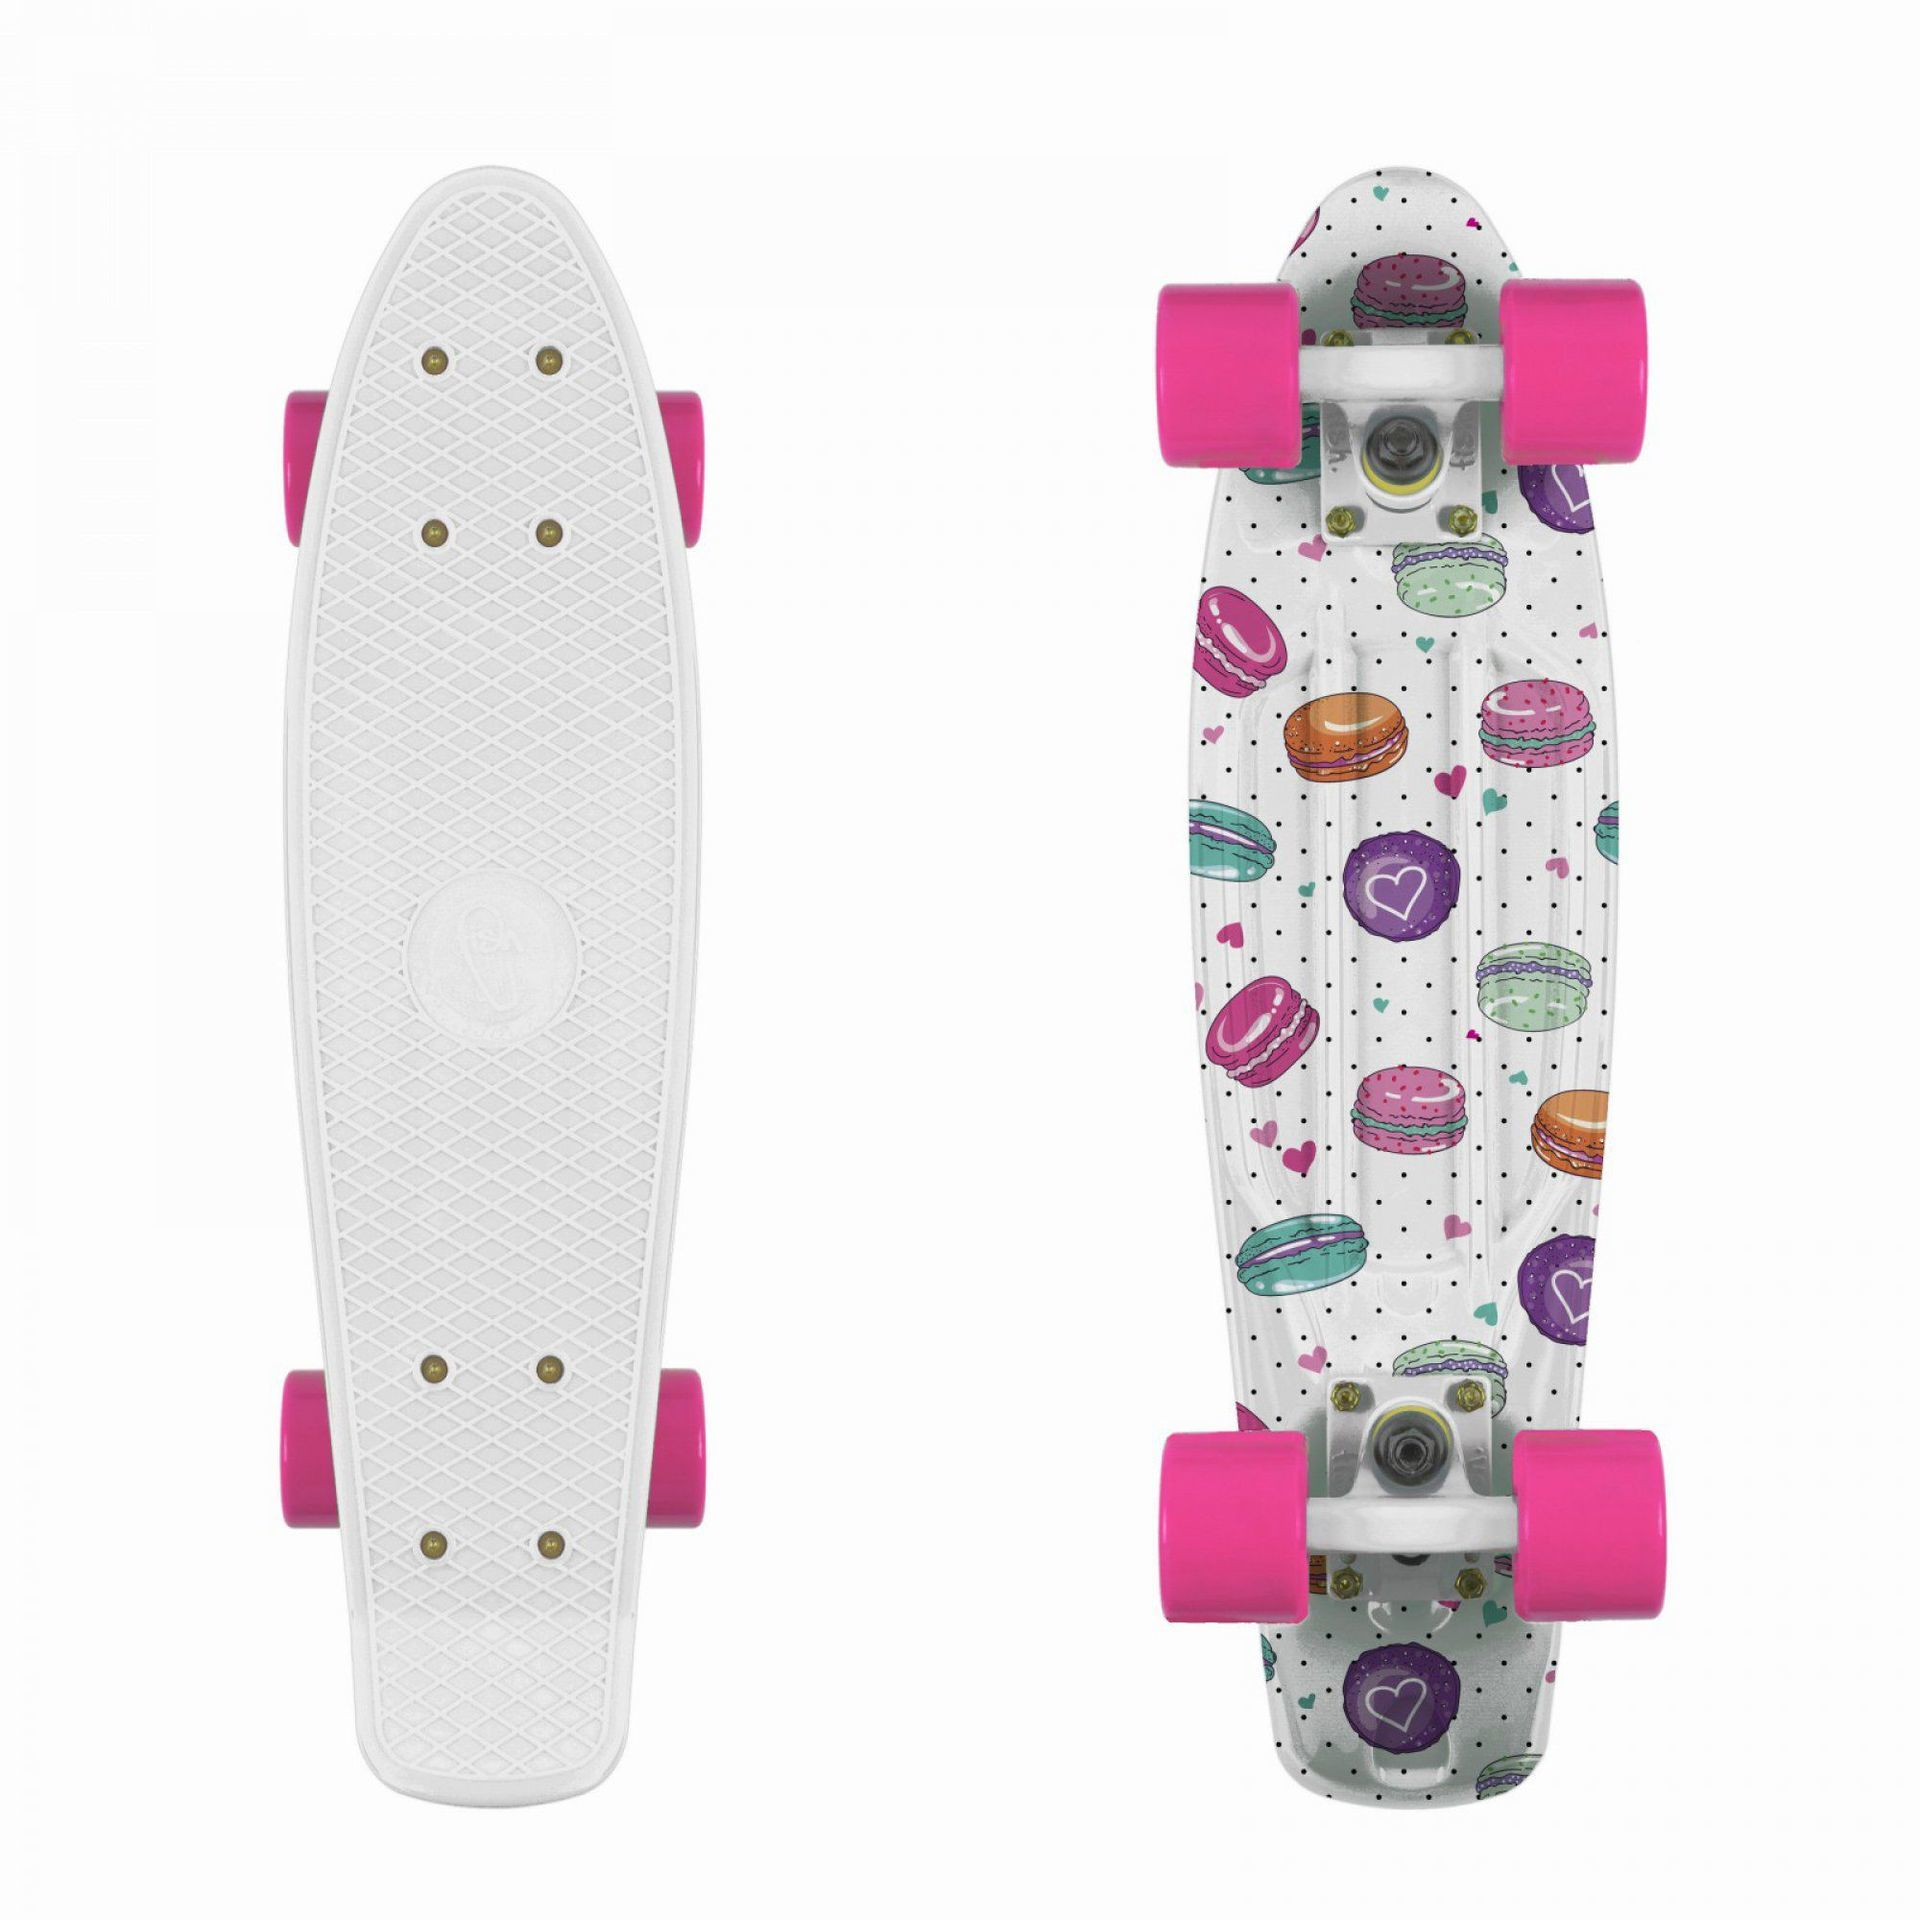 FISHBOARD FISH SKATEBOARDS PRINT MACARONS|WHITE|PINK